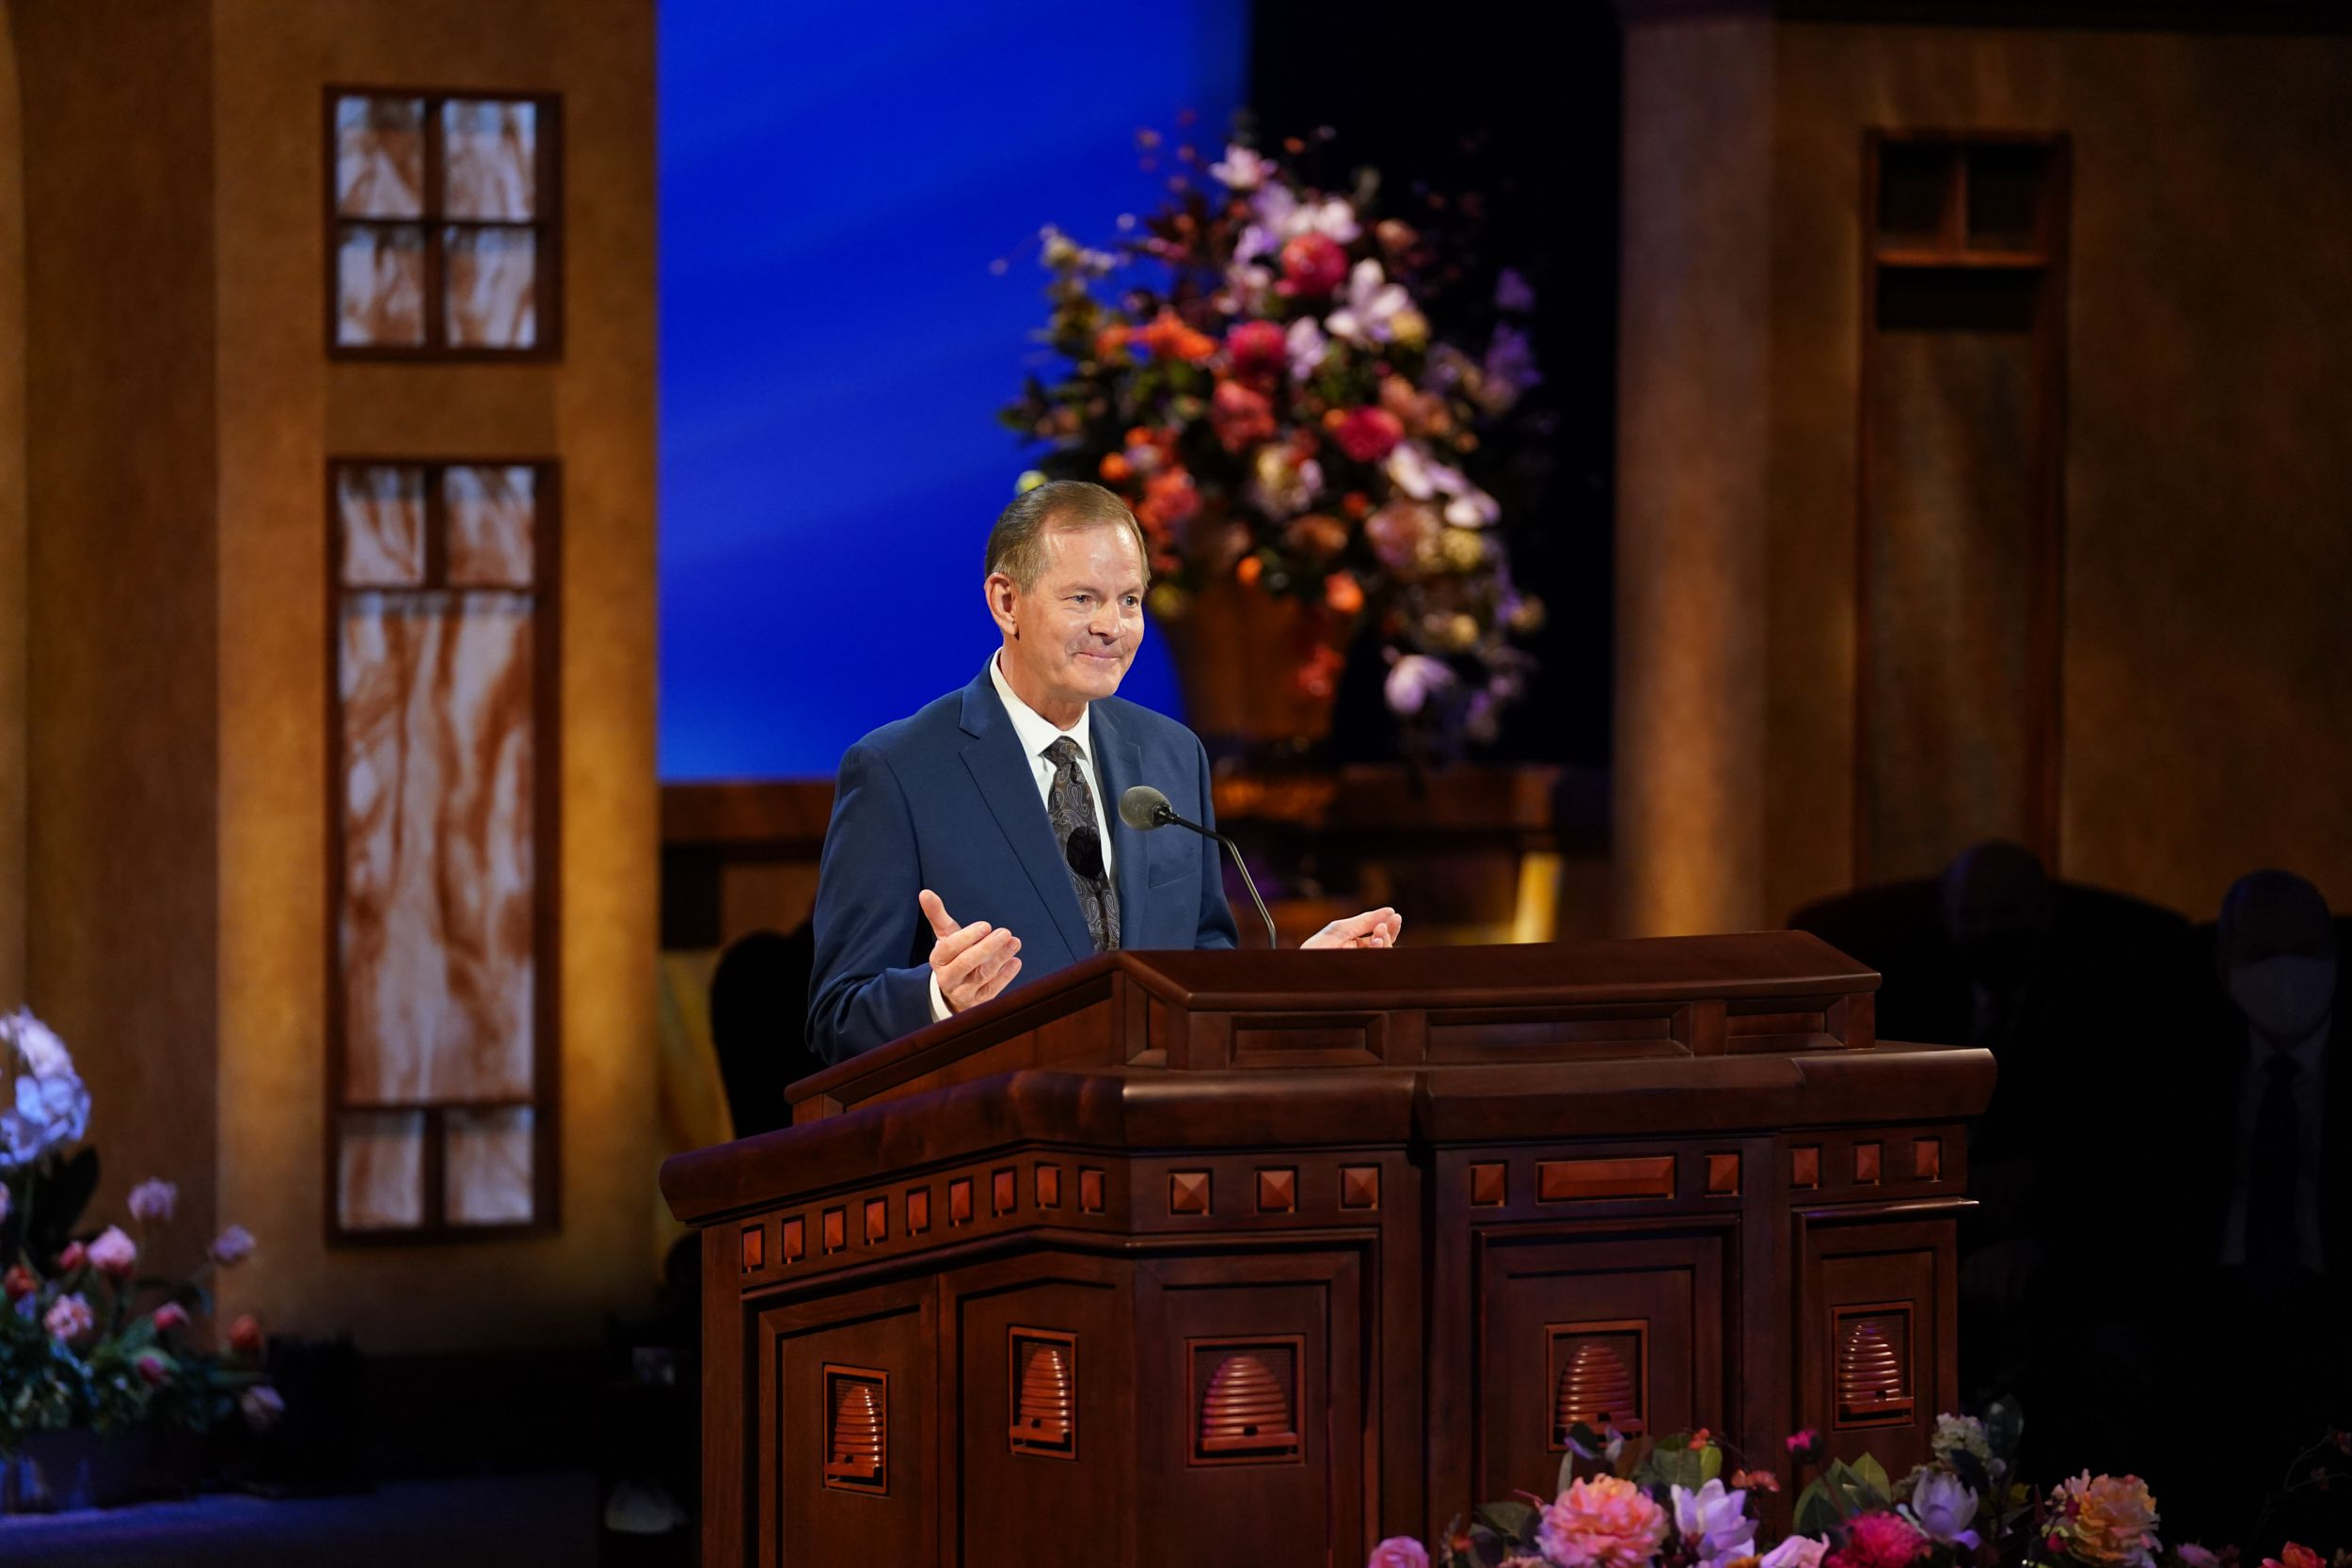 (Photo courtesy of The Church of Jesus Christ of Latter-day Saints) Apostle Gary E. Stevenson speaks at General Conference on Saturday, April 3, 2021.